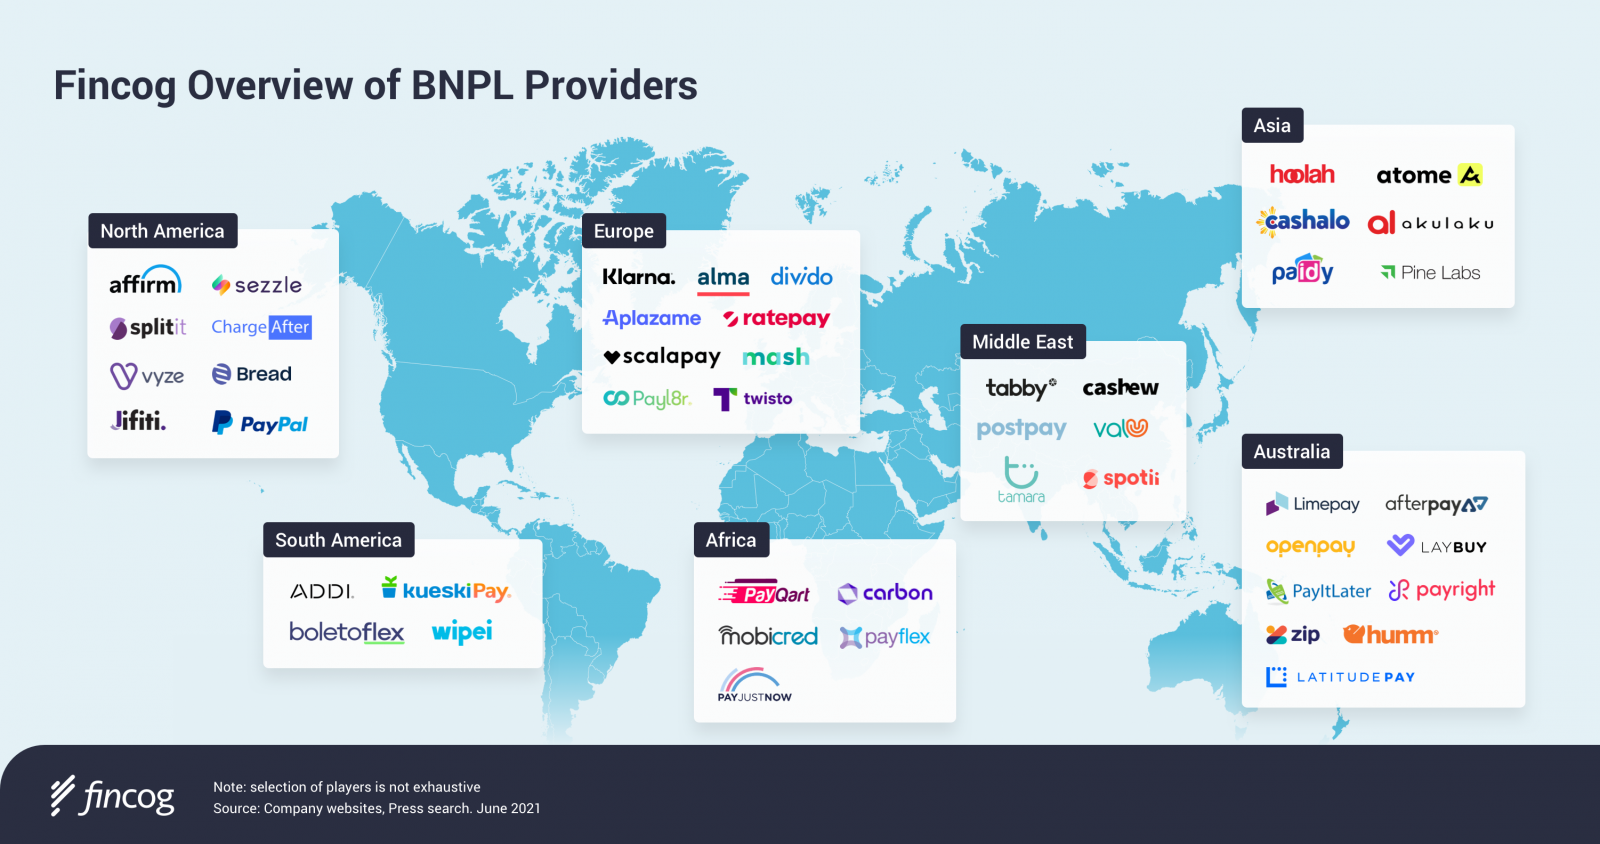 Fincog Overview of BNPL Providers